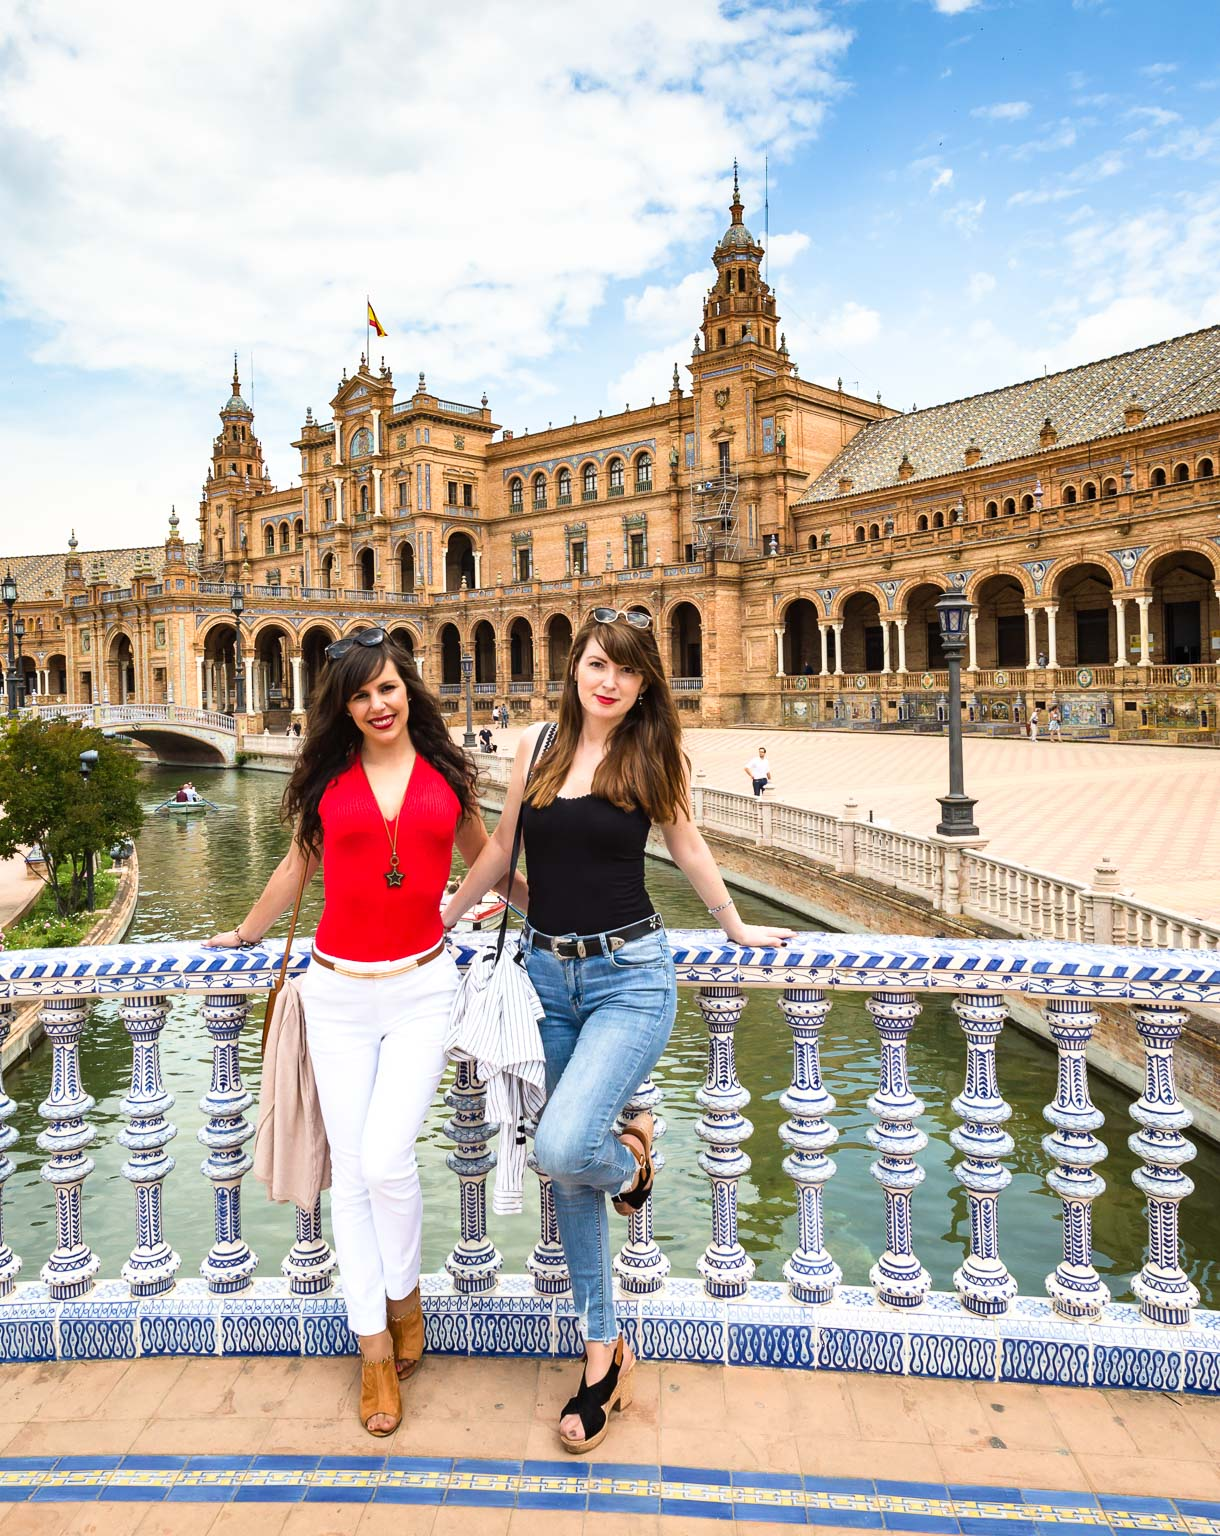 Plaza De Espana with two lovely tourists from Valencia.